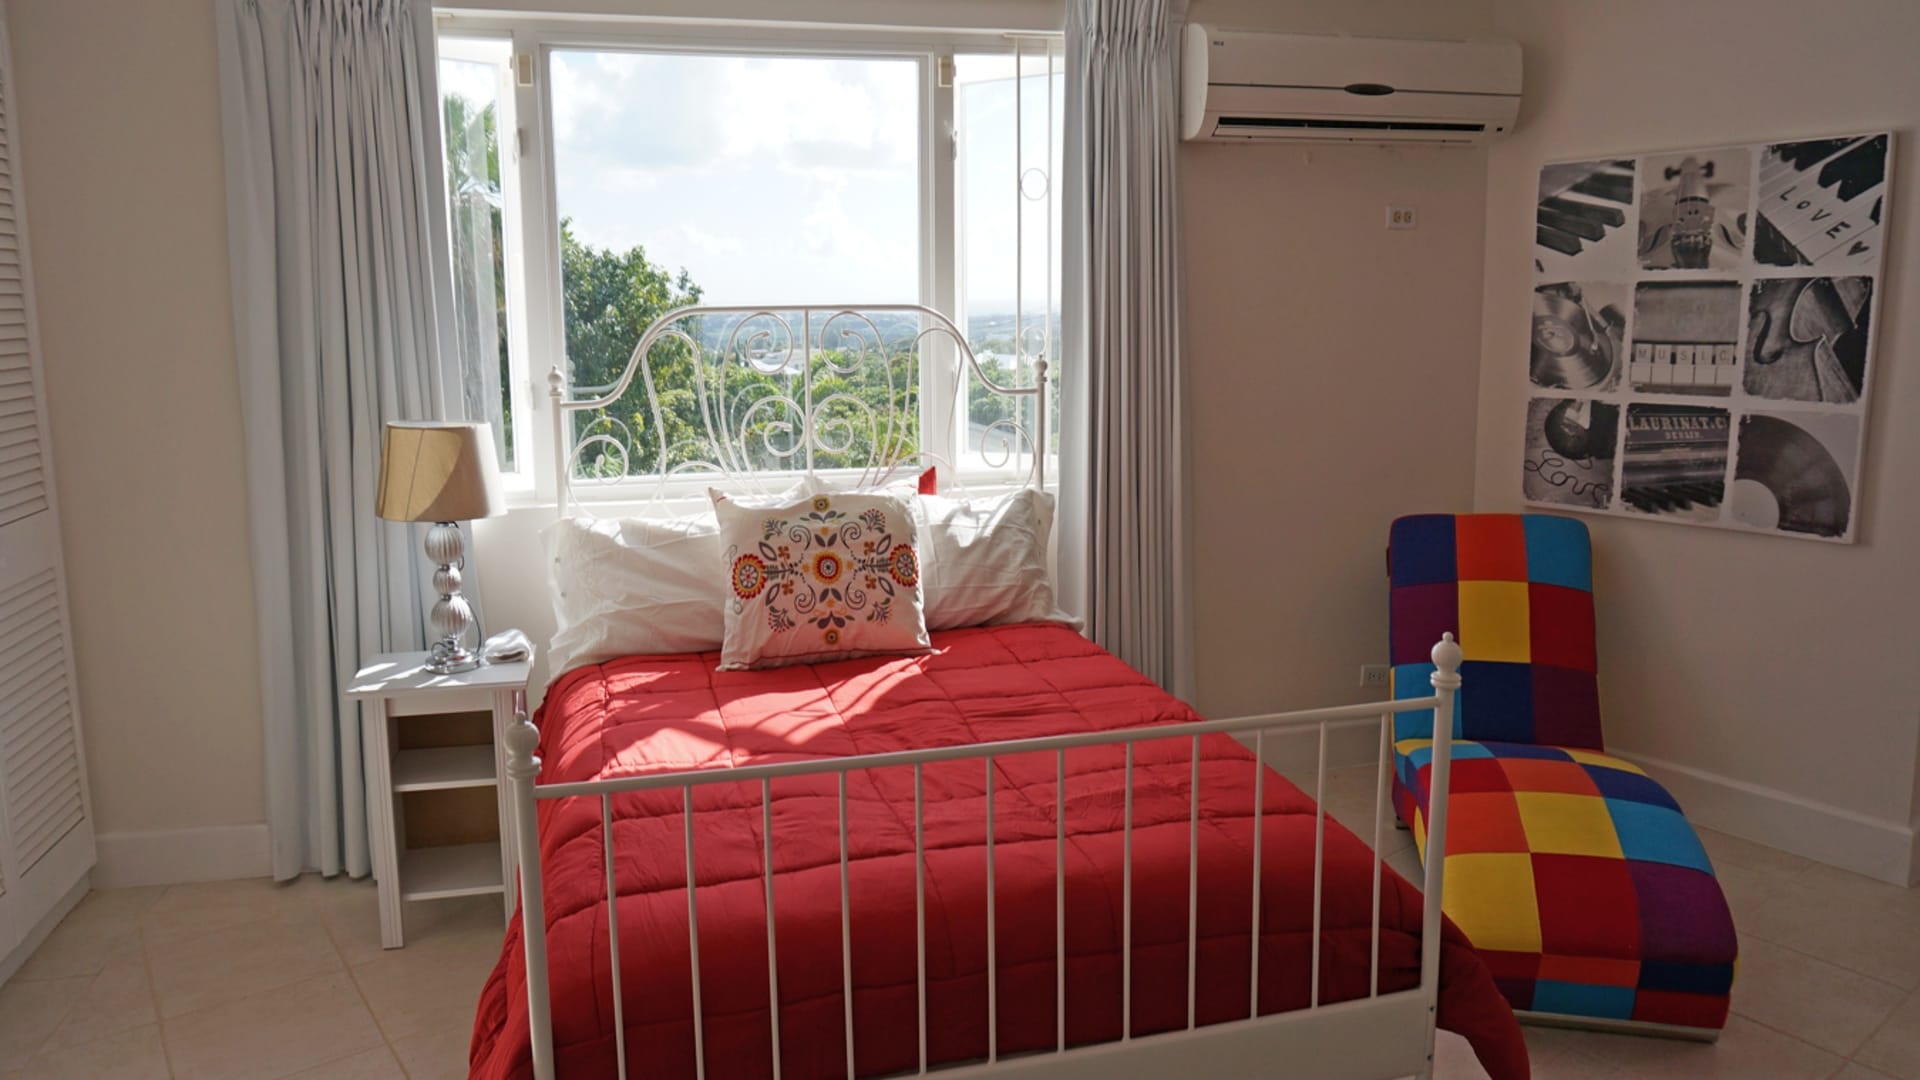 Palm Court Bedroom Furniture Palm Court O House O Barbados Luxury Homes Real Estate For Sale